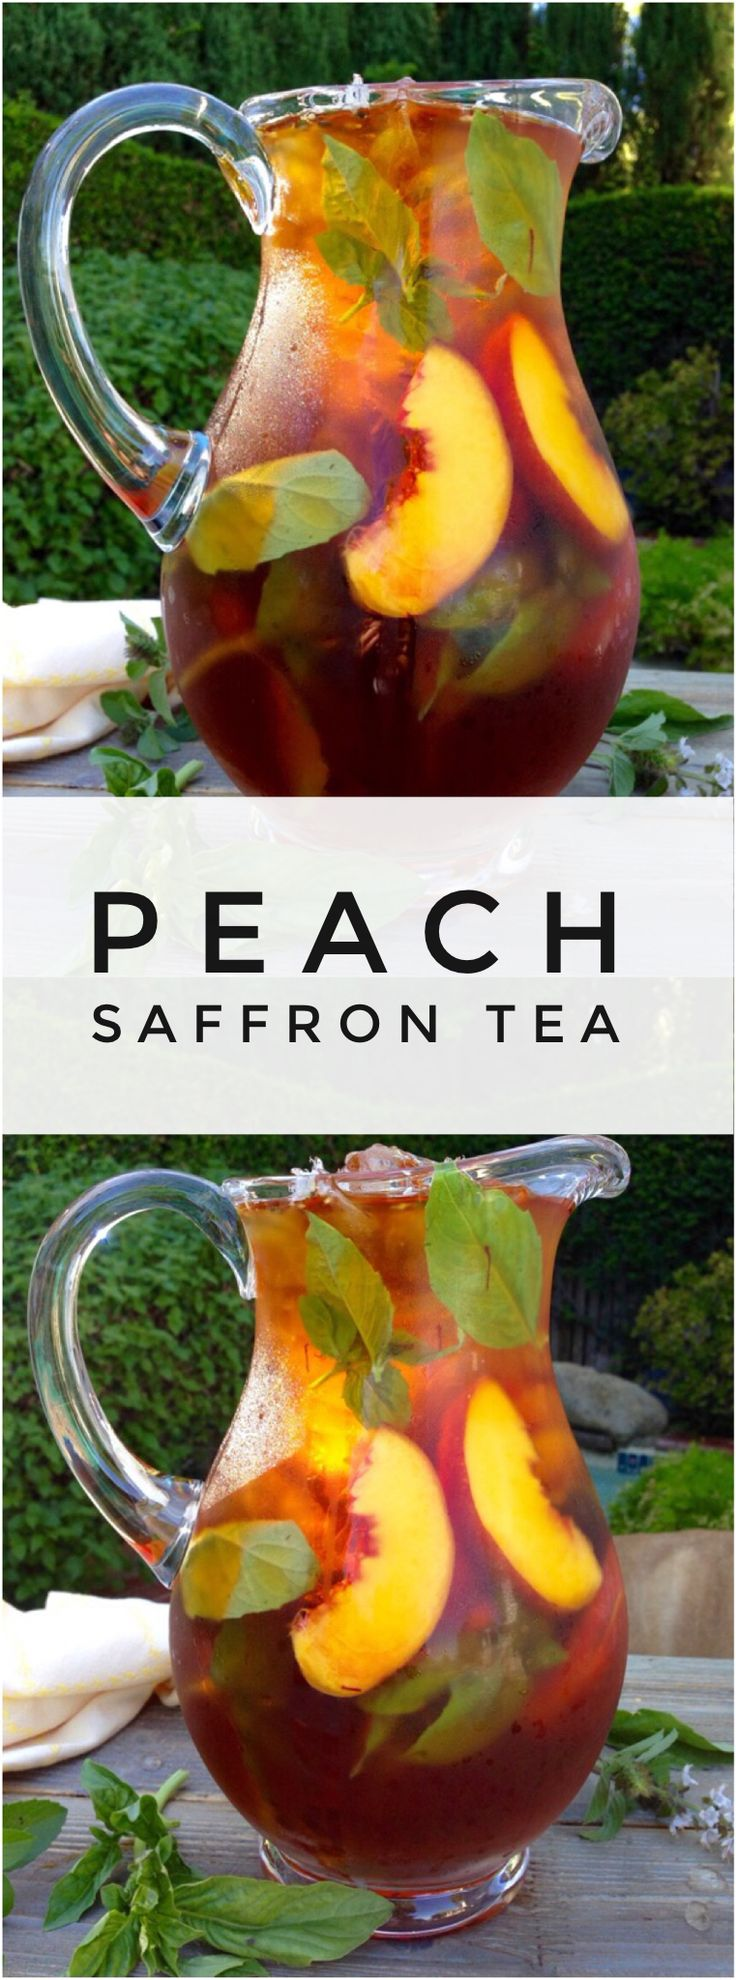 Healthy Skin Iced Saffron Tea Recipe with Peach and Basil | CiaoFlorentina.com @CiaoFlorentina